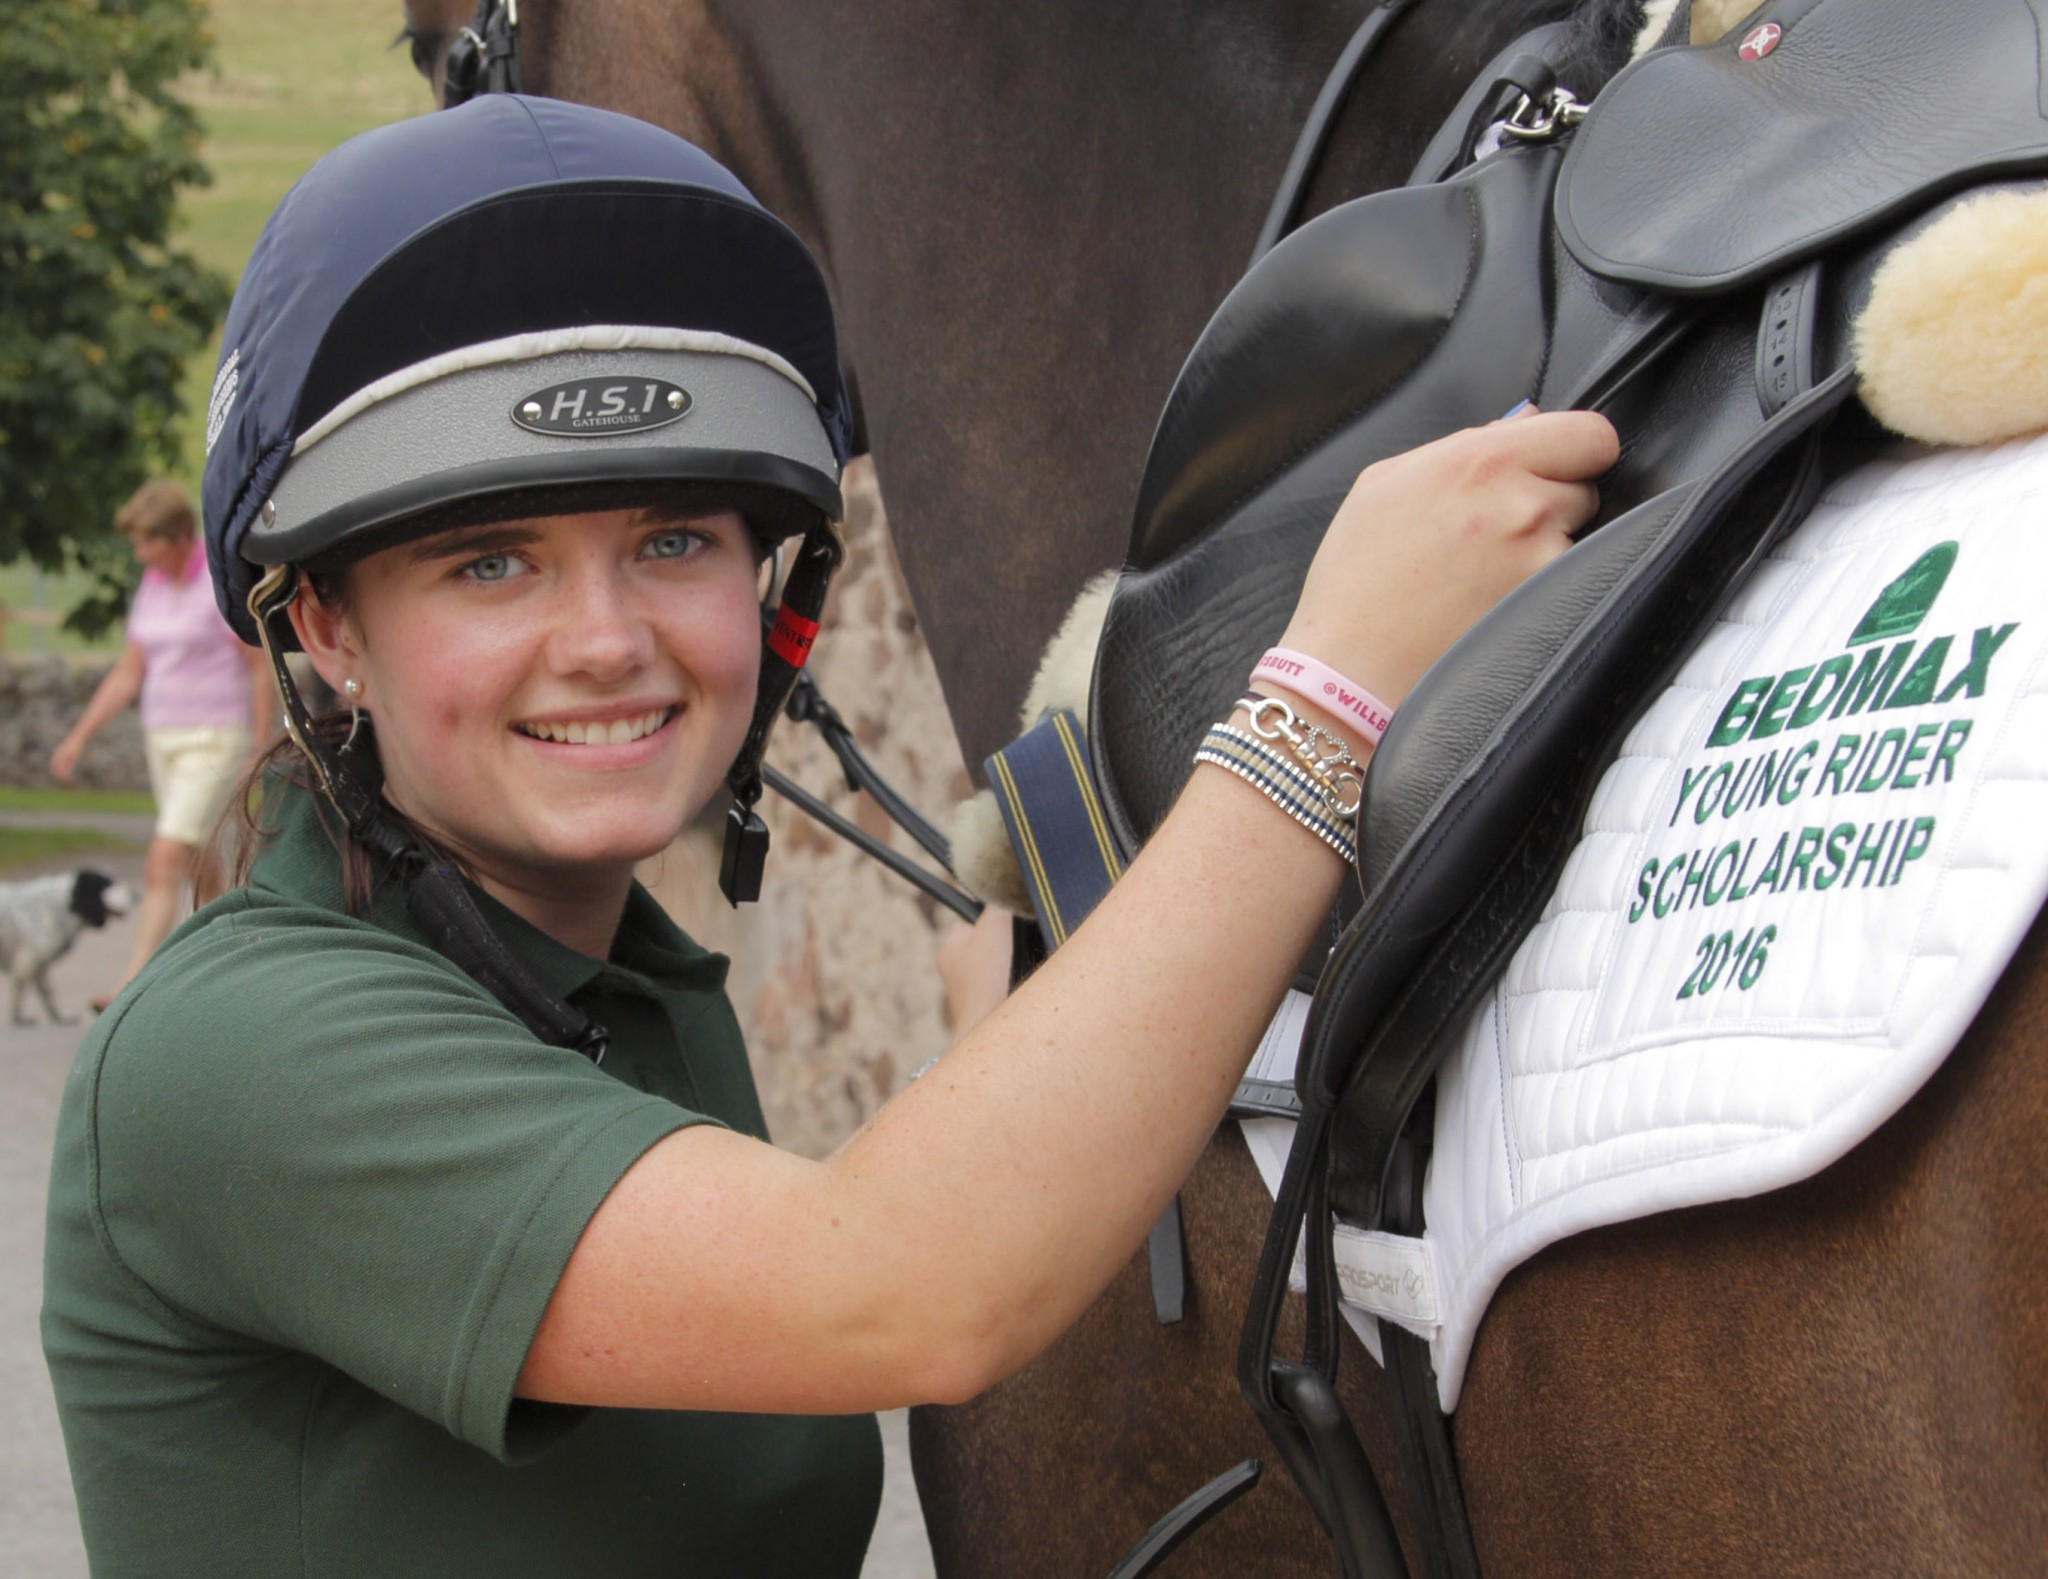 Bedmax - Young Rider Scholarship programme launched for second year running